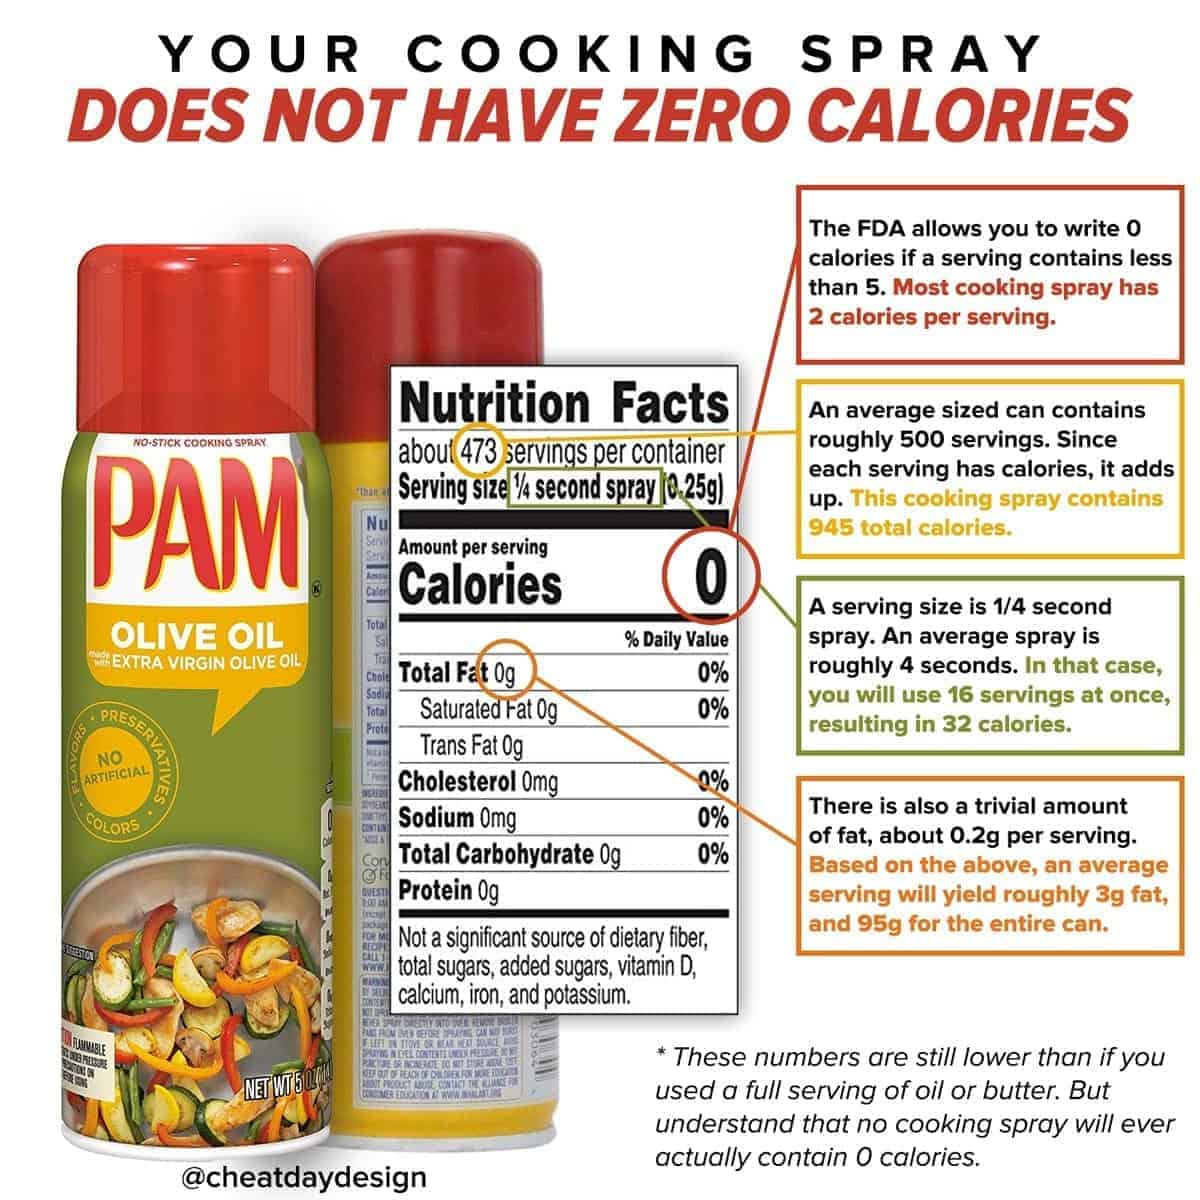 How Many Calories Does Cooking Spray Really Have?